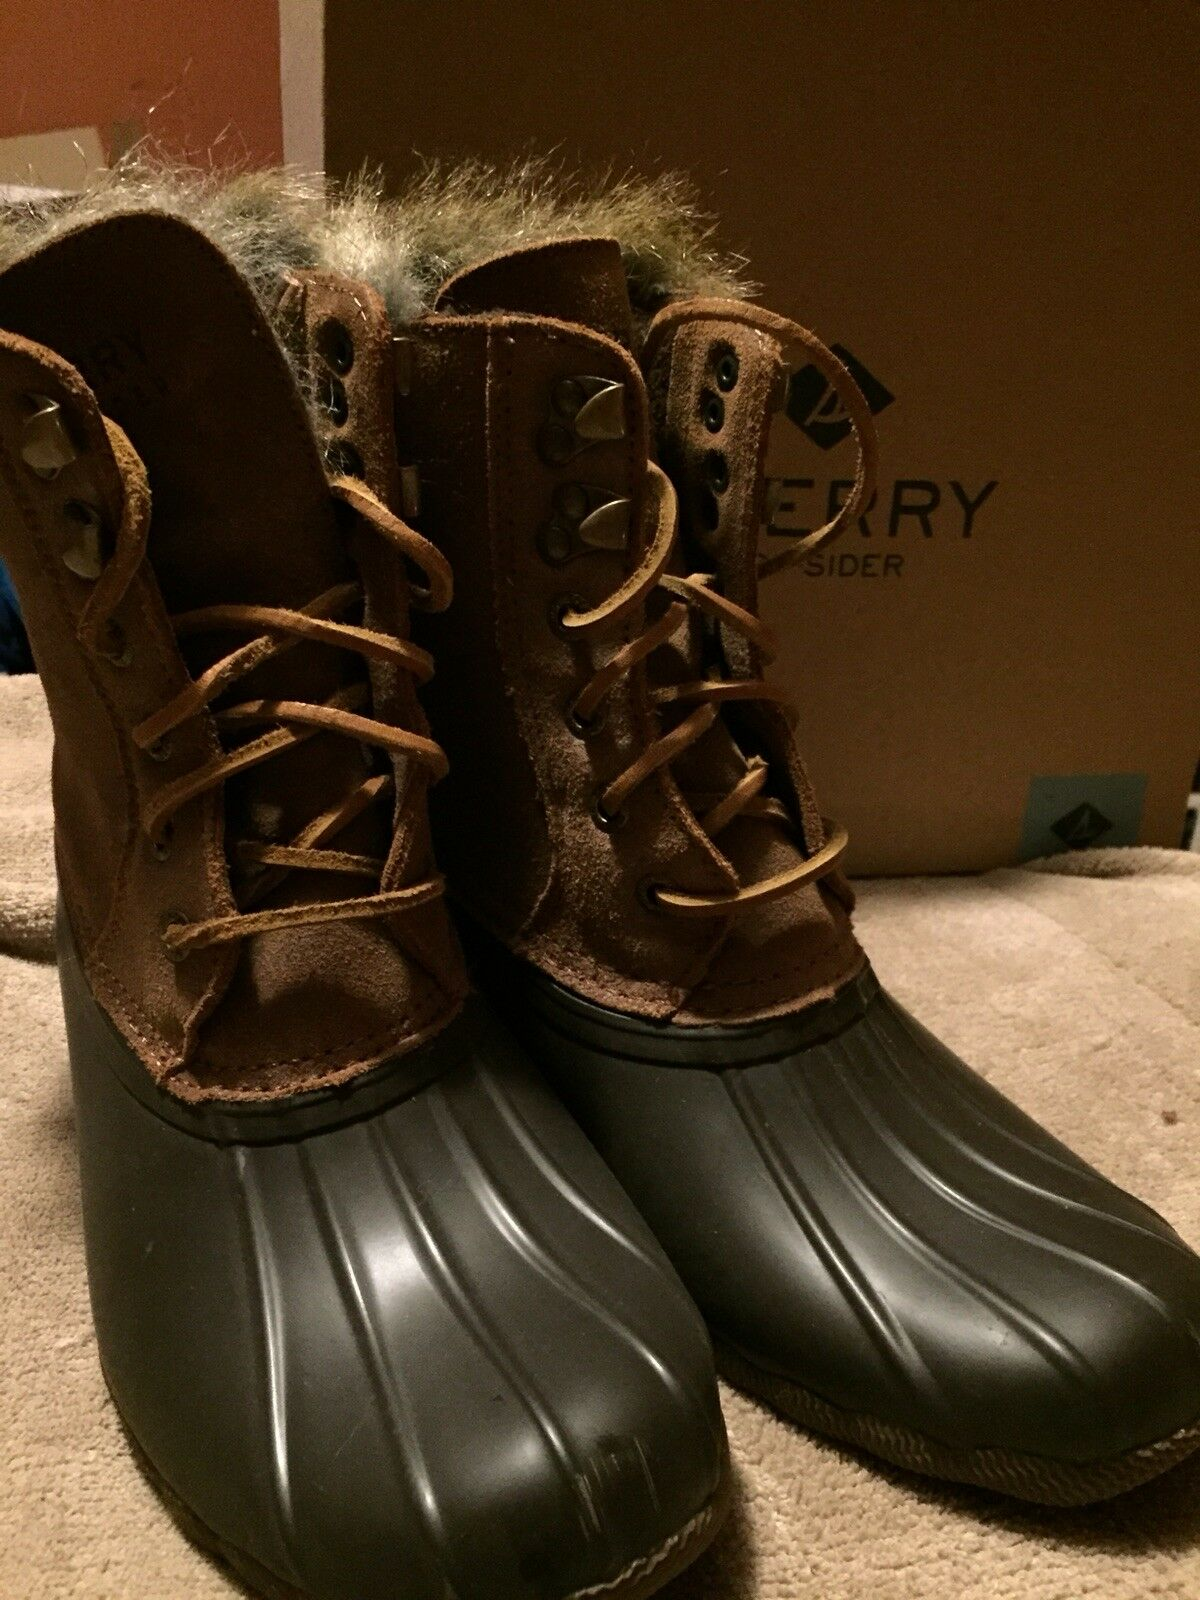 Sperry Sperry Sperry White Water Rain Boots ca508f